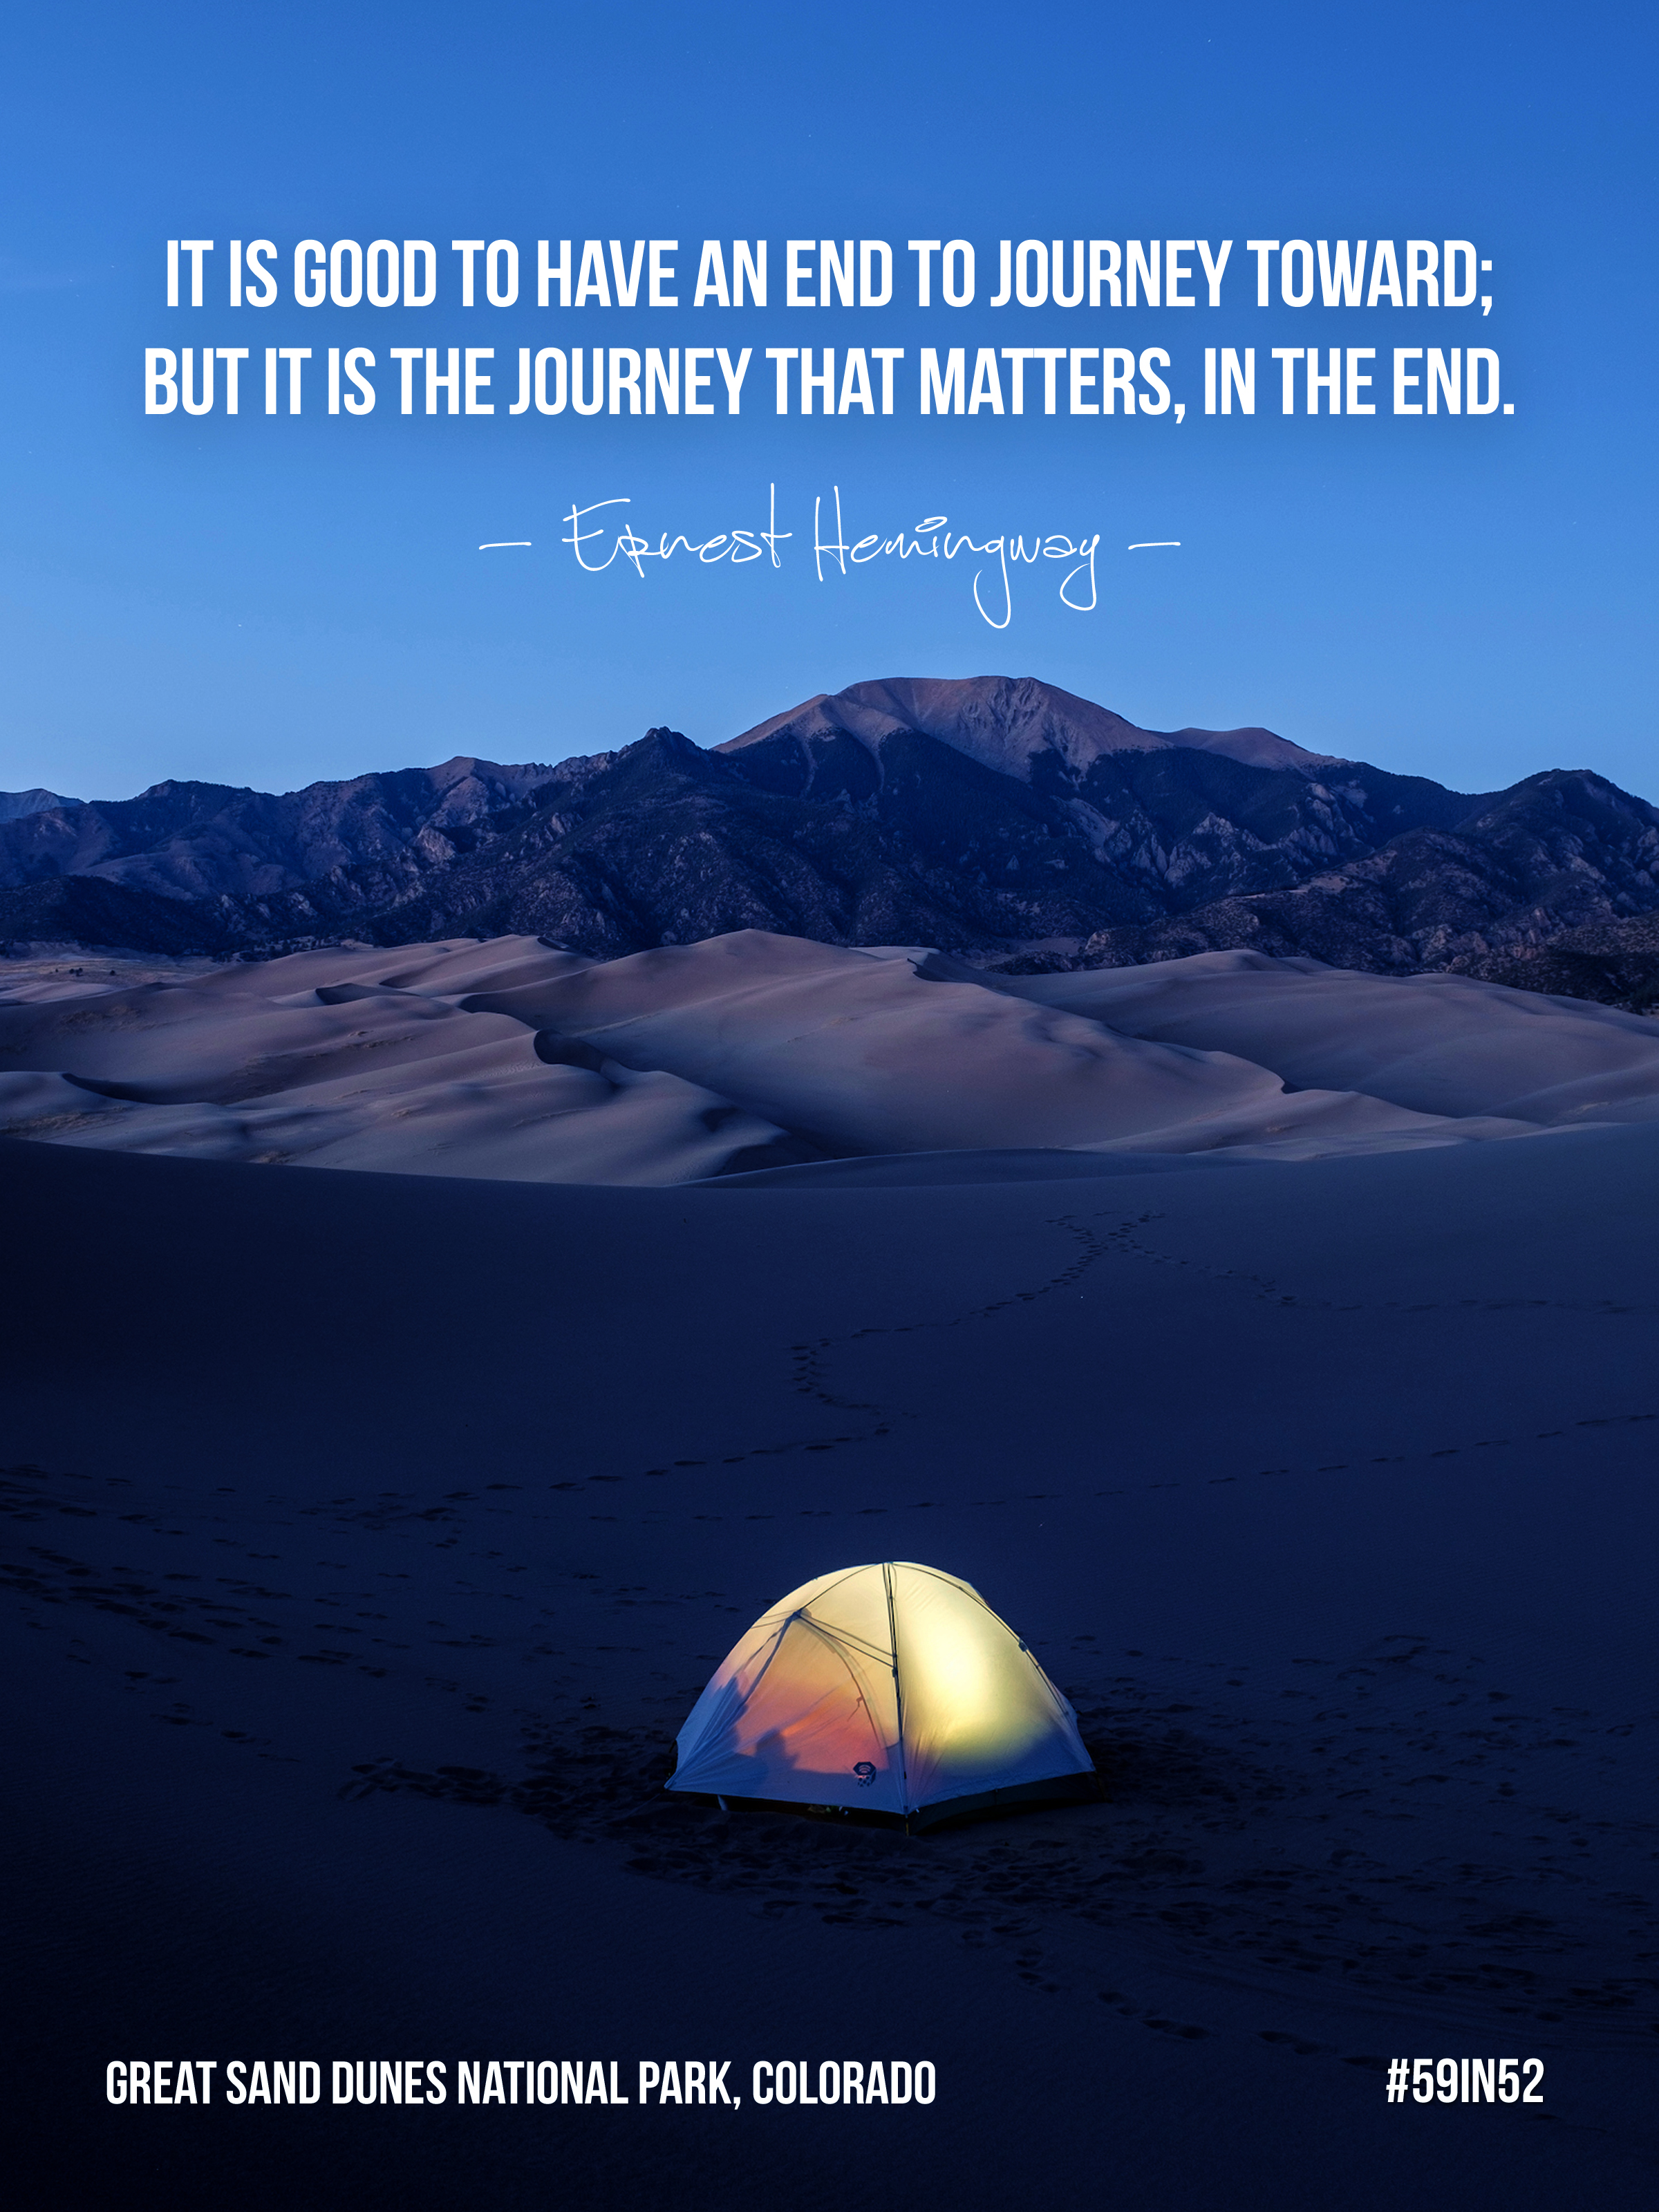 """It is good to have an end to journey toward; but it is the journey that matters, in the end."" - Ernest Hemingway"